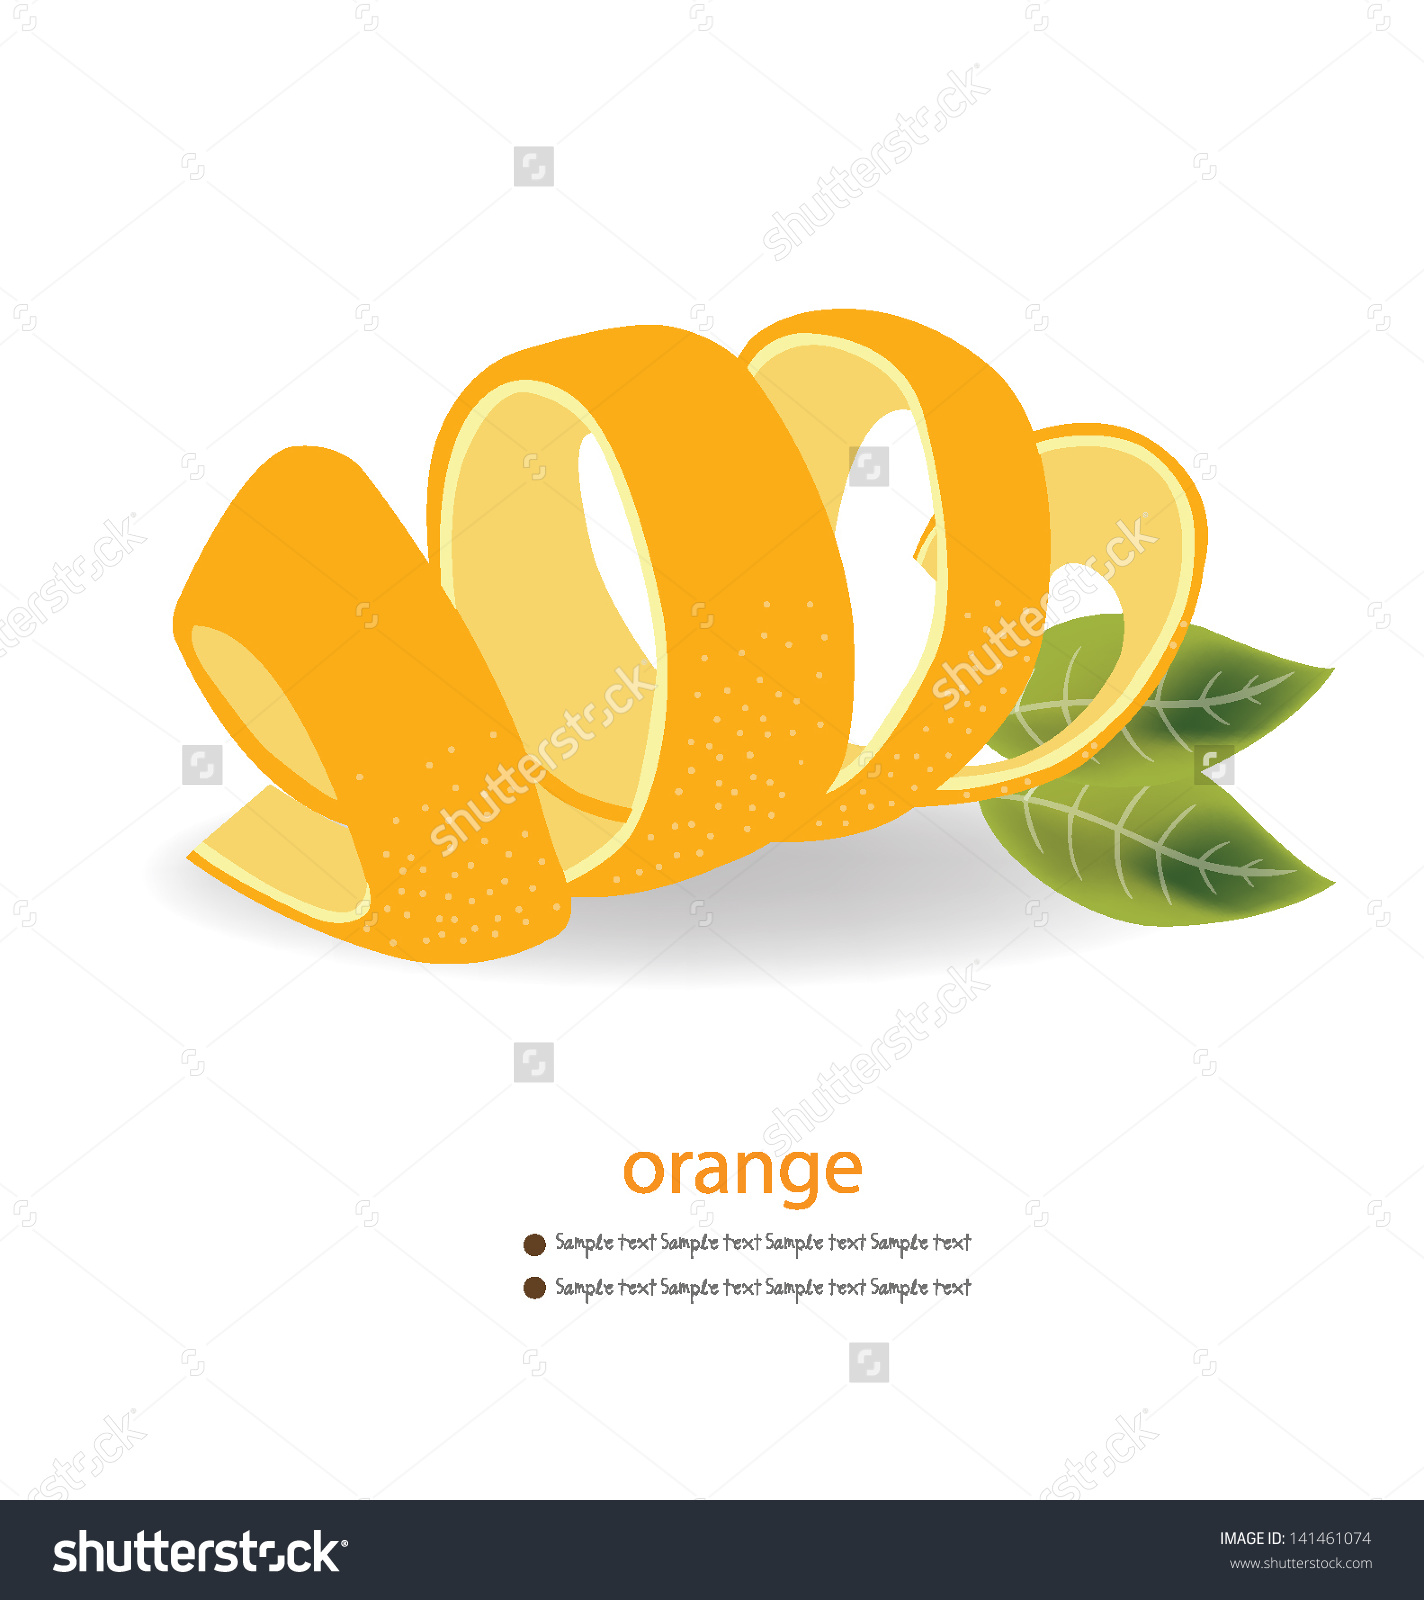 Orange Peel Vector Illustration Stock Vector 141461074.